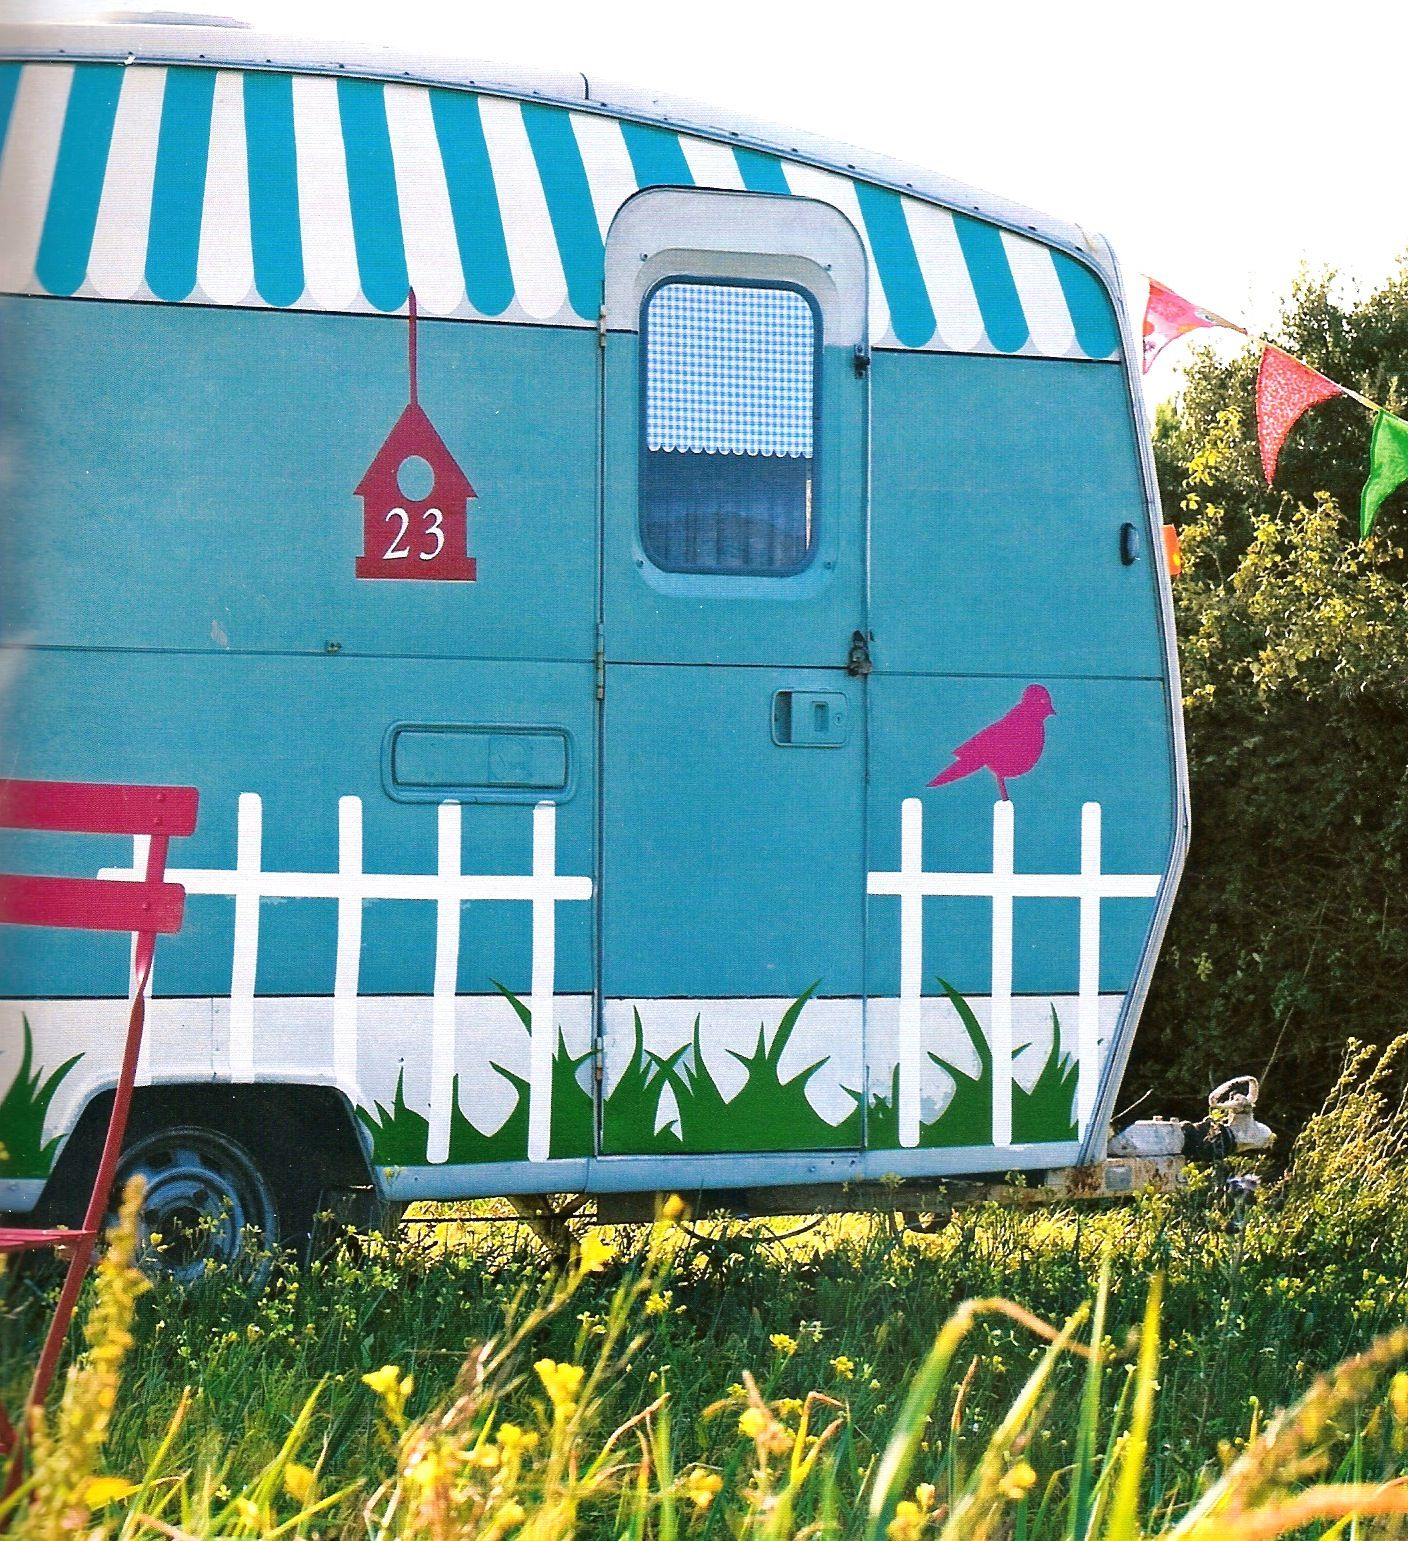 Tammy, if we don't get an airstream right off, we could paint a different kind like this....very cute